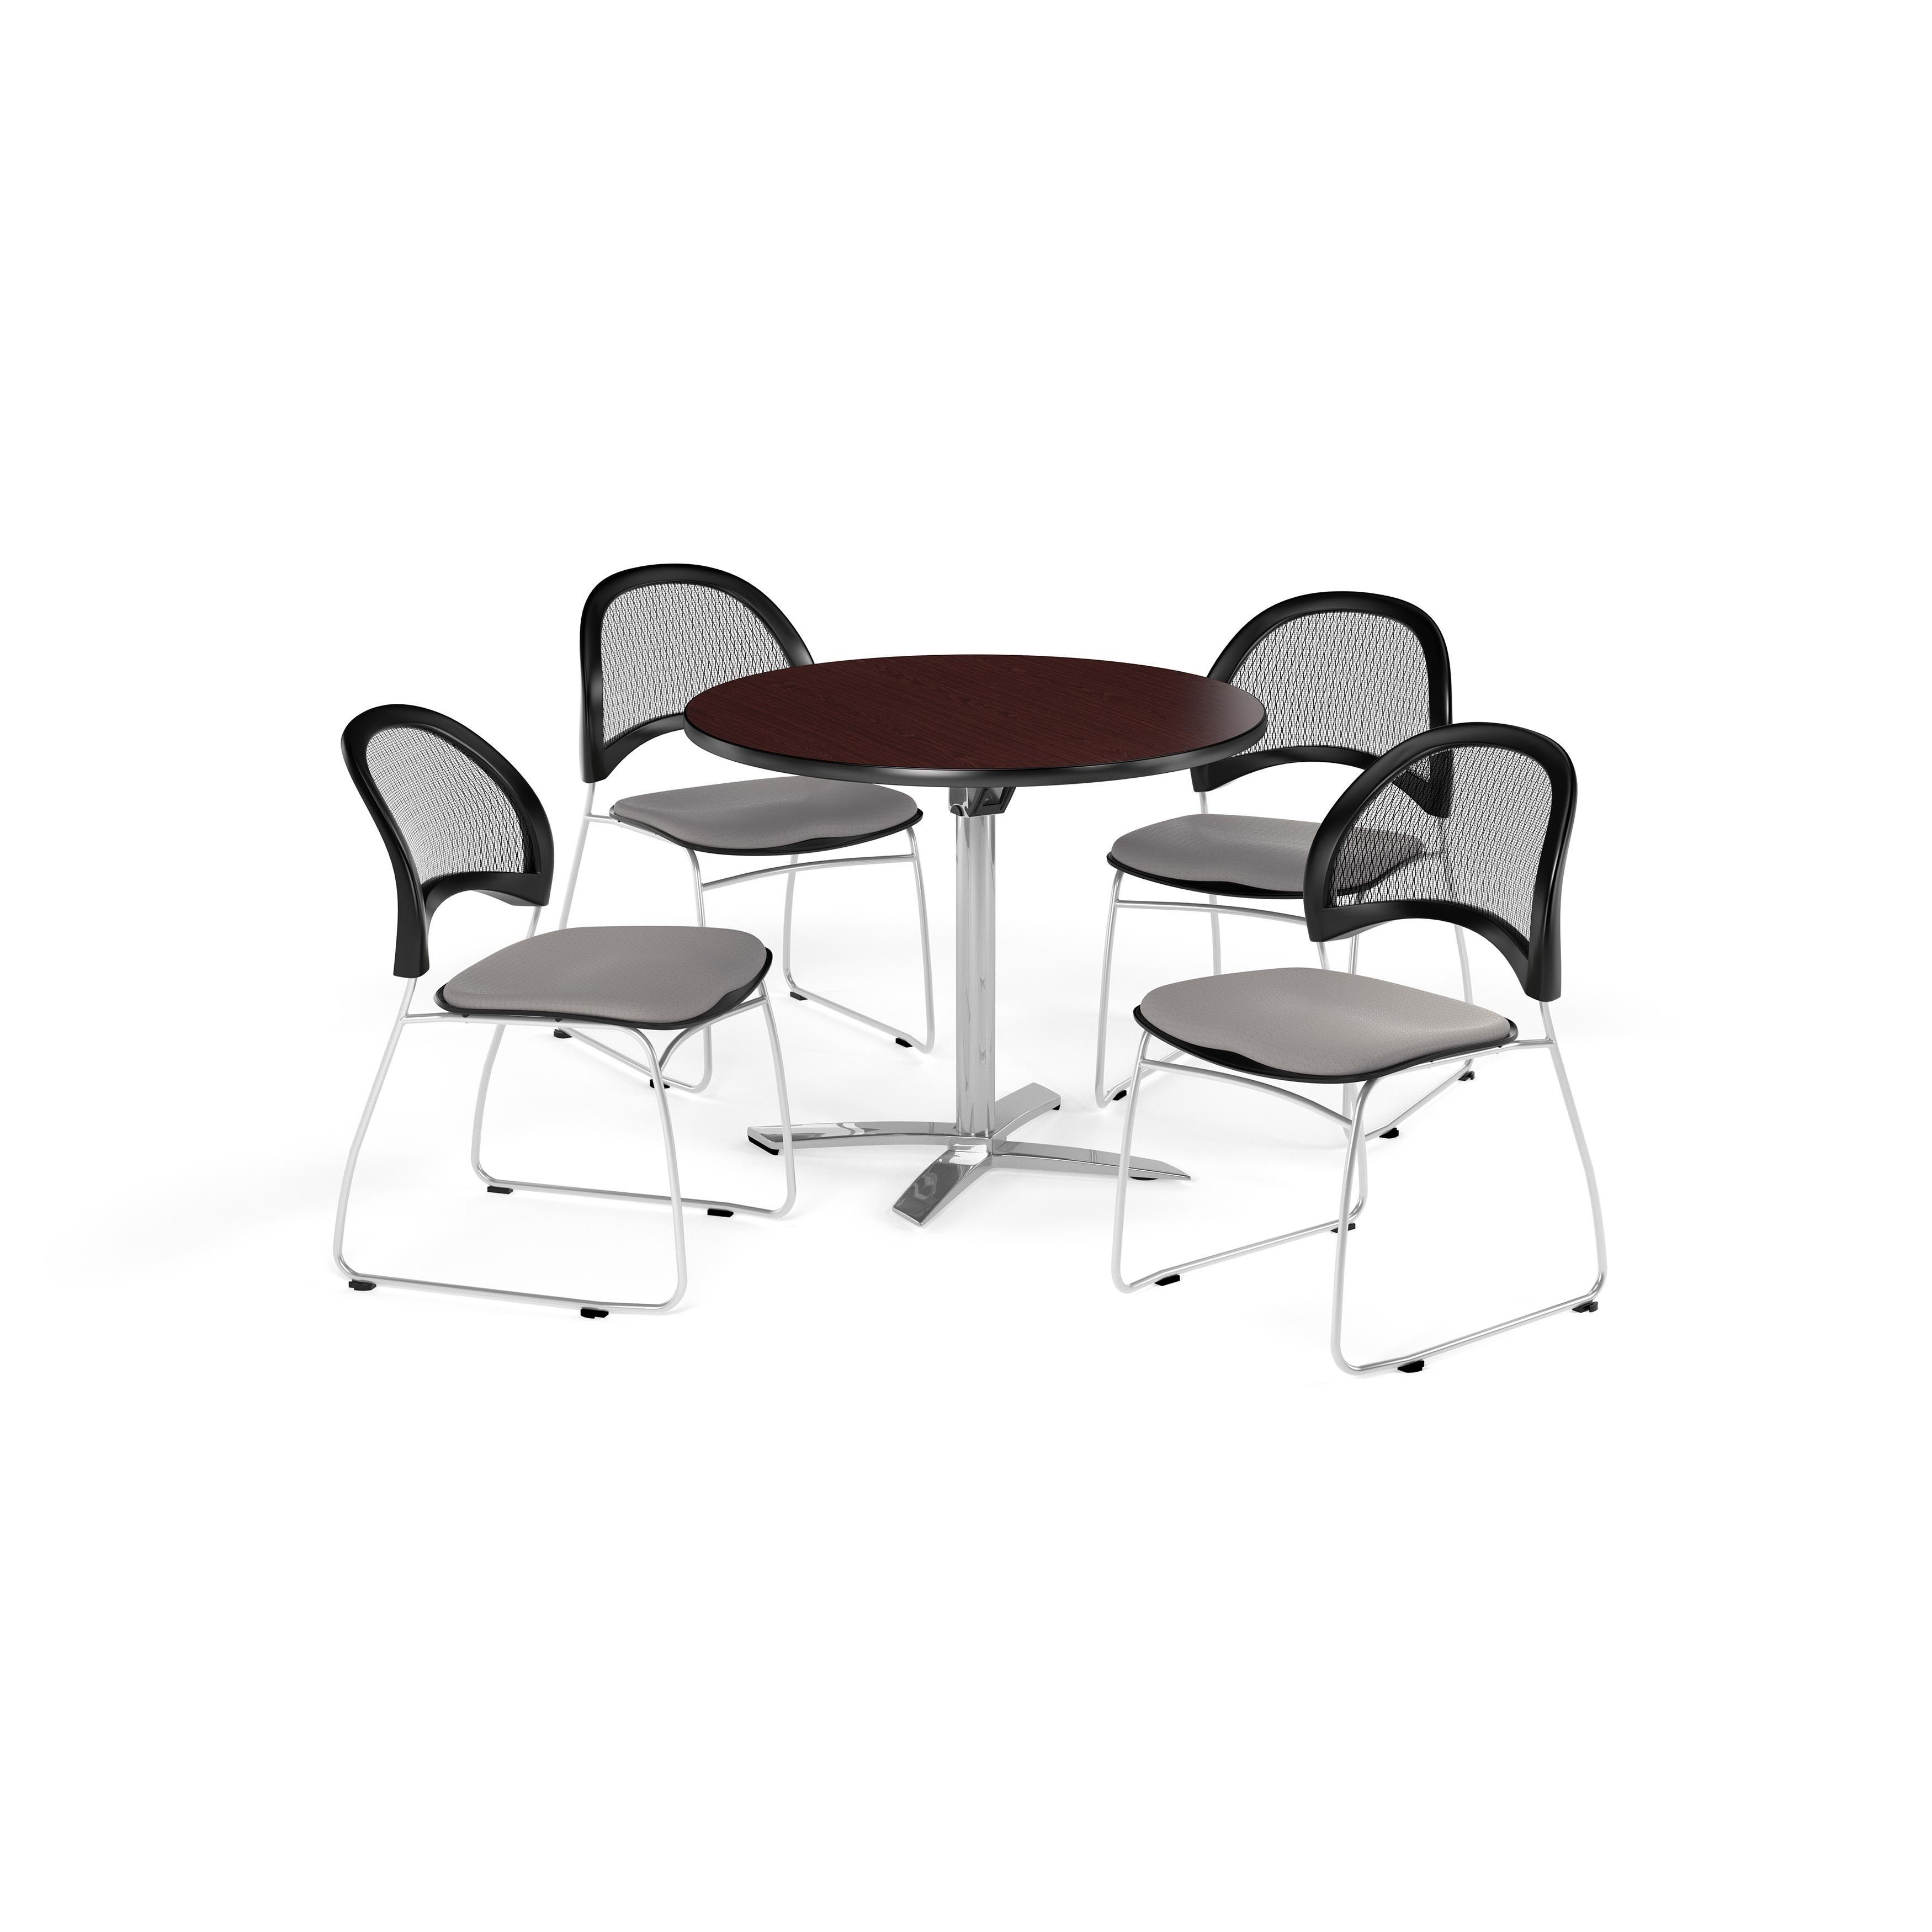 OFM Mahogany 42 inch Square Multi Purpose Table with 4 Moon Chairs